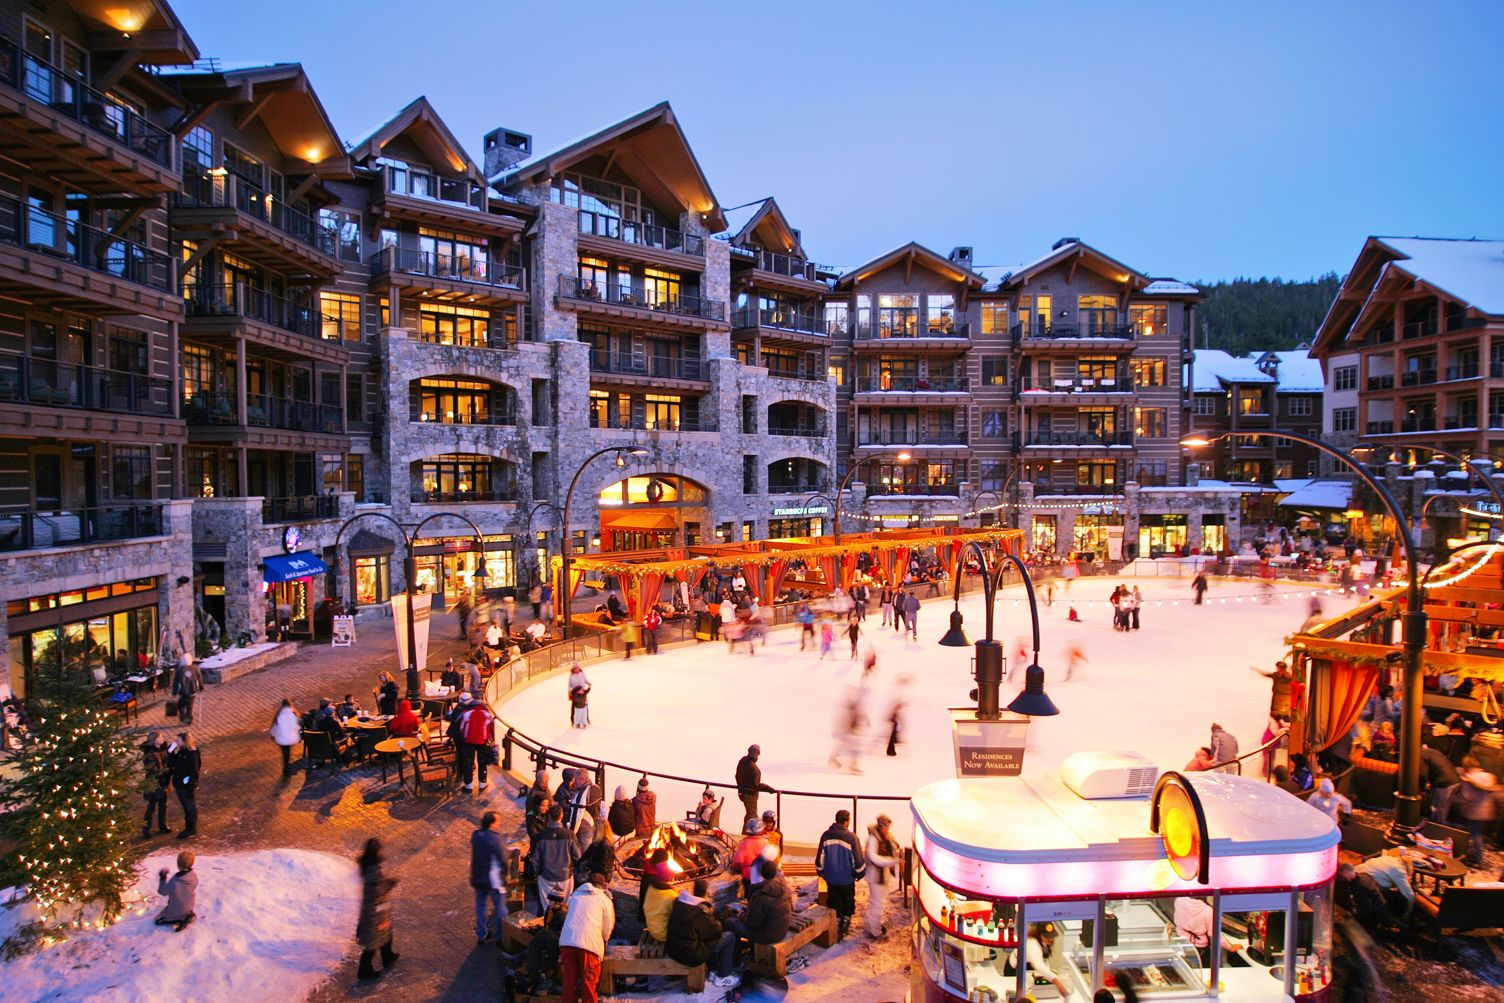 Best Kitchen Gallery: Best Family Ski Resorts In The Us Skating Rink Lake Tahoe And Resorts of South Lake Tahoe Resort Hotel  on rachelxblog.com